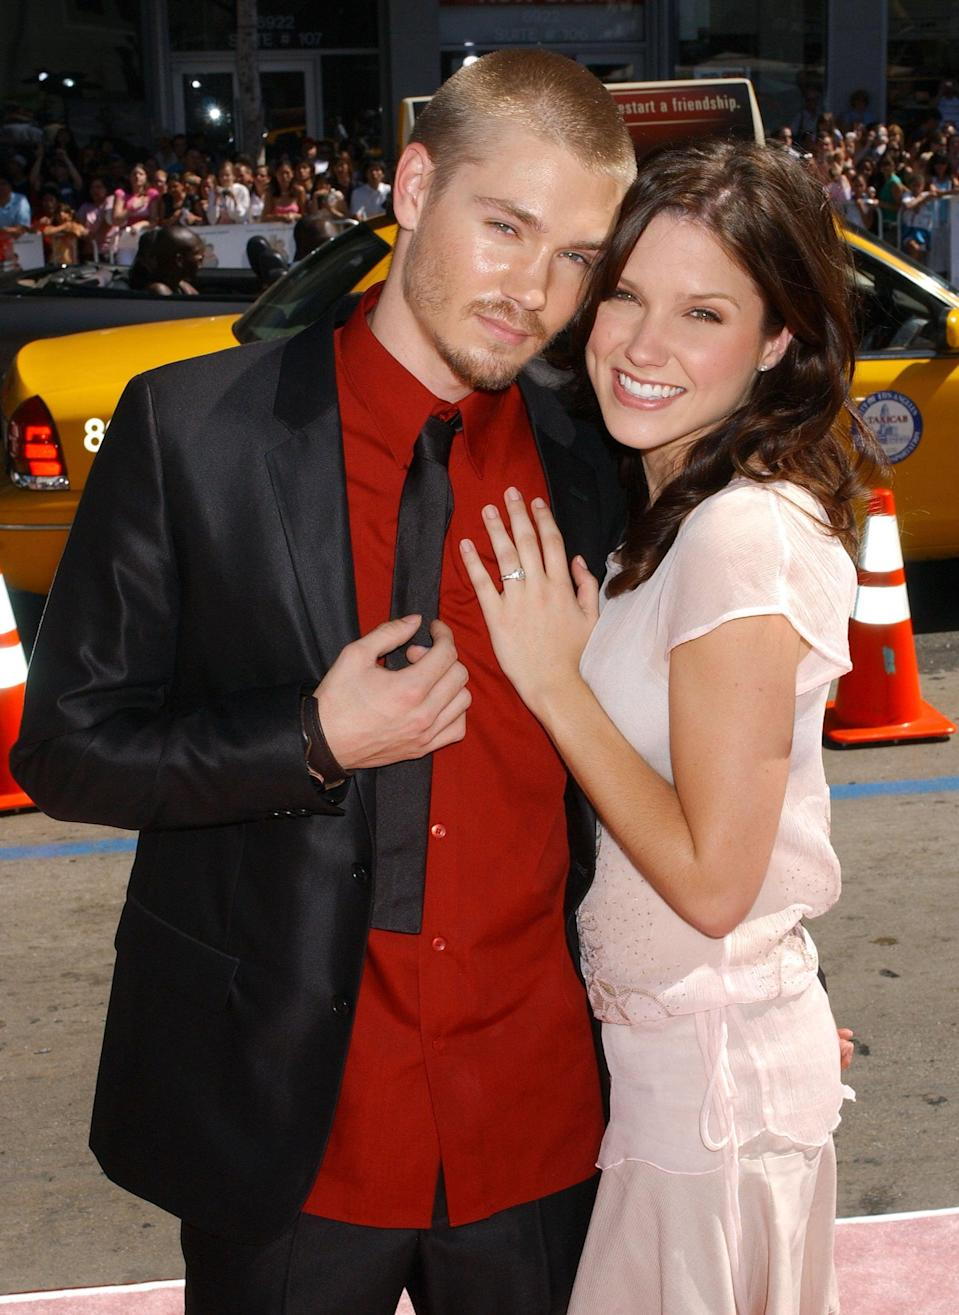 "<p>After meeting on the set of <strong>One Tree Hill </strong>in 2003, Sophia and Chad quickly fell in love and even tied the knot in 2005. Unfortunately, the couple filed for divorce only five months later, though they continued to star on the show as tumultuous couple Lucas and Brooke until Chad's departure in 2009. </p> <p>The former couple attempted to keep the peace on set following their divorce, but Sophia told <strong>Cosmopolitan</strong> in January 2017 that <a href=""http://www.cosmopolitan.com/sex-love/a8579094/why-to-stop-seeking-the-one/"" class=""link rapid-noclick-resp"" rel=""nofollow noopener"" target=""_blank"" data-ylk=""slk:the experience was pretty difficult"">the experience was pretty difficult</a>, and ""the trauma of [the breakup] was amplified by how public it became."" Later, during a June 2018 appearance on <strong>Watch What Happens Live With Andy Cohen</strong>, <a href=""http://www.bravotv.com/watch-what-happens-live-with-andy-cohen/season-11/videos/sophia-dishes-on-her-ex"" class=""link rapid-noclick-resp"" rel=""nofollow noopener"" target=""_blank"" data-ylk=""slk:Sophia said the relationship was a mistake"">Sophia said the relationship was a mistake</a>. ""We were two stupid kids who had no business being in a relationship in the first place,"" she added. </p>"